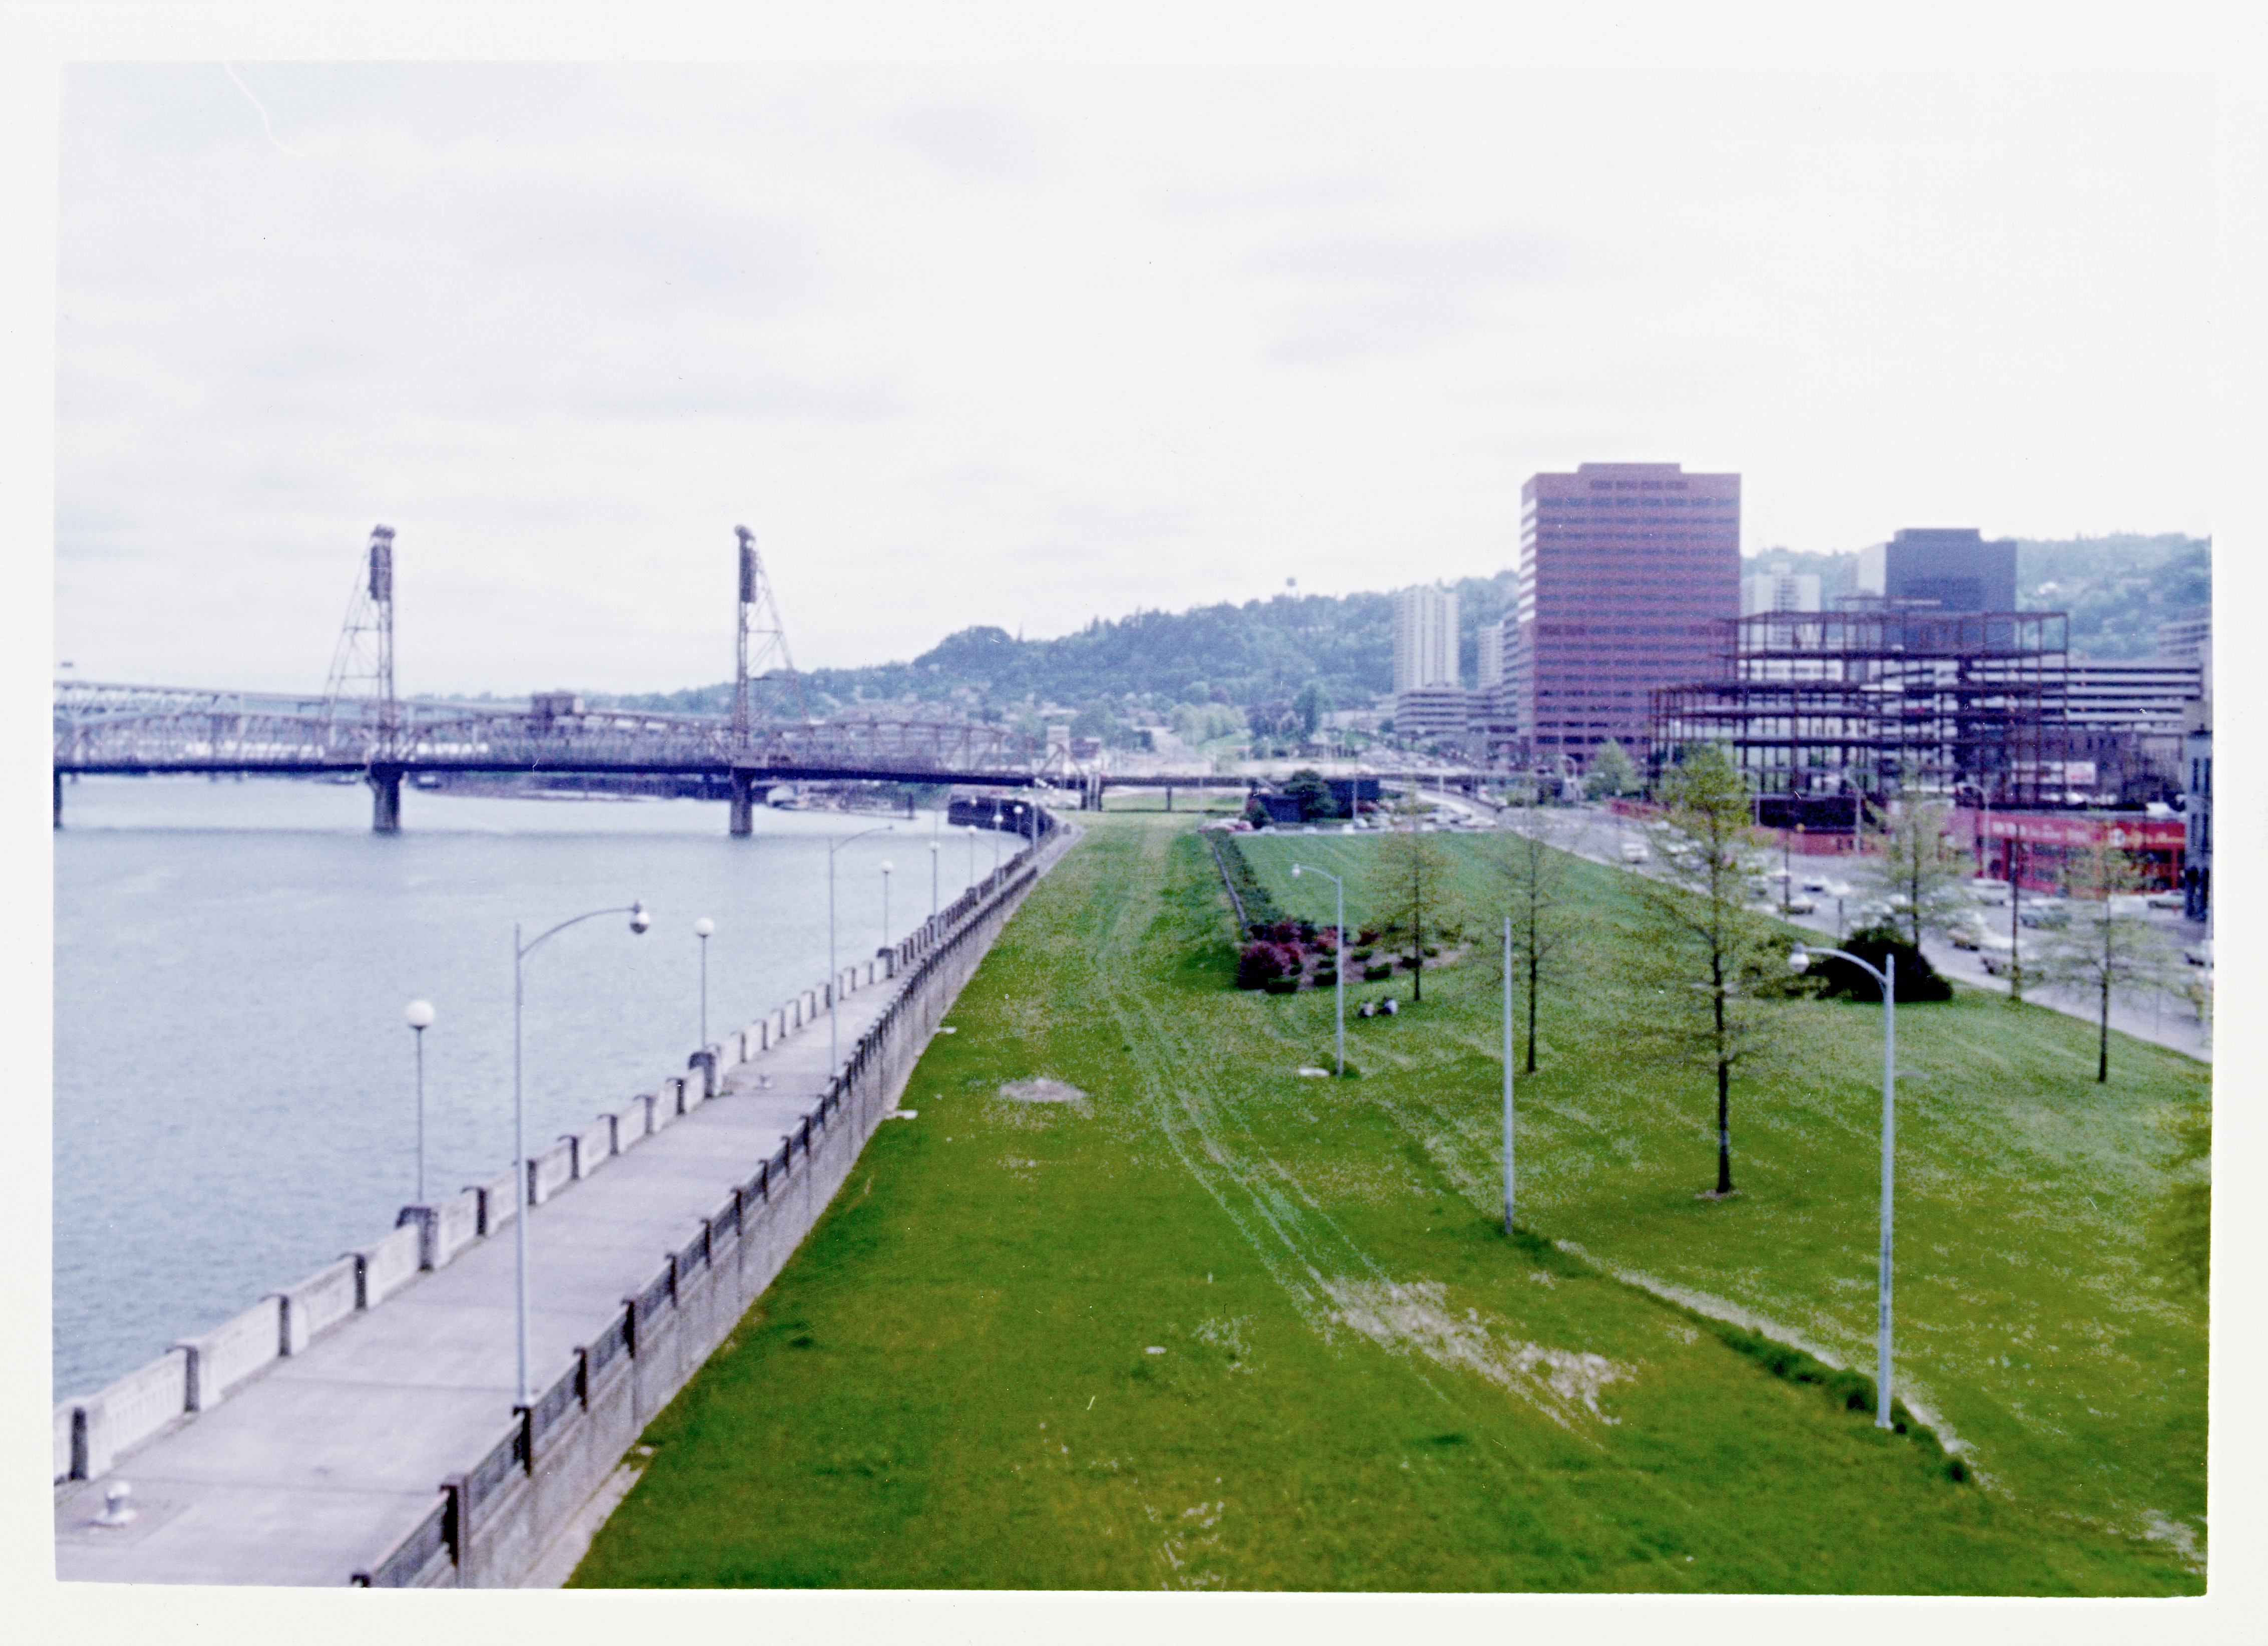 Waterfront Park in Portland in the 1970s